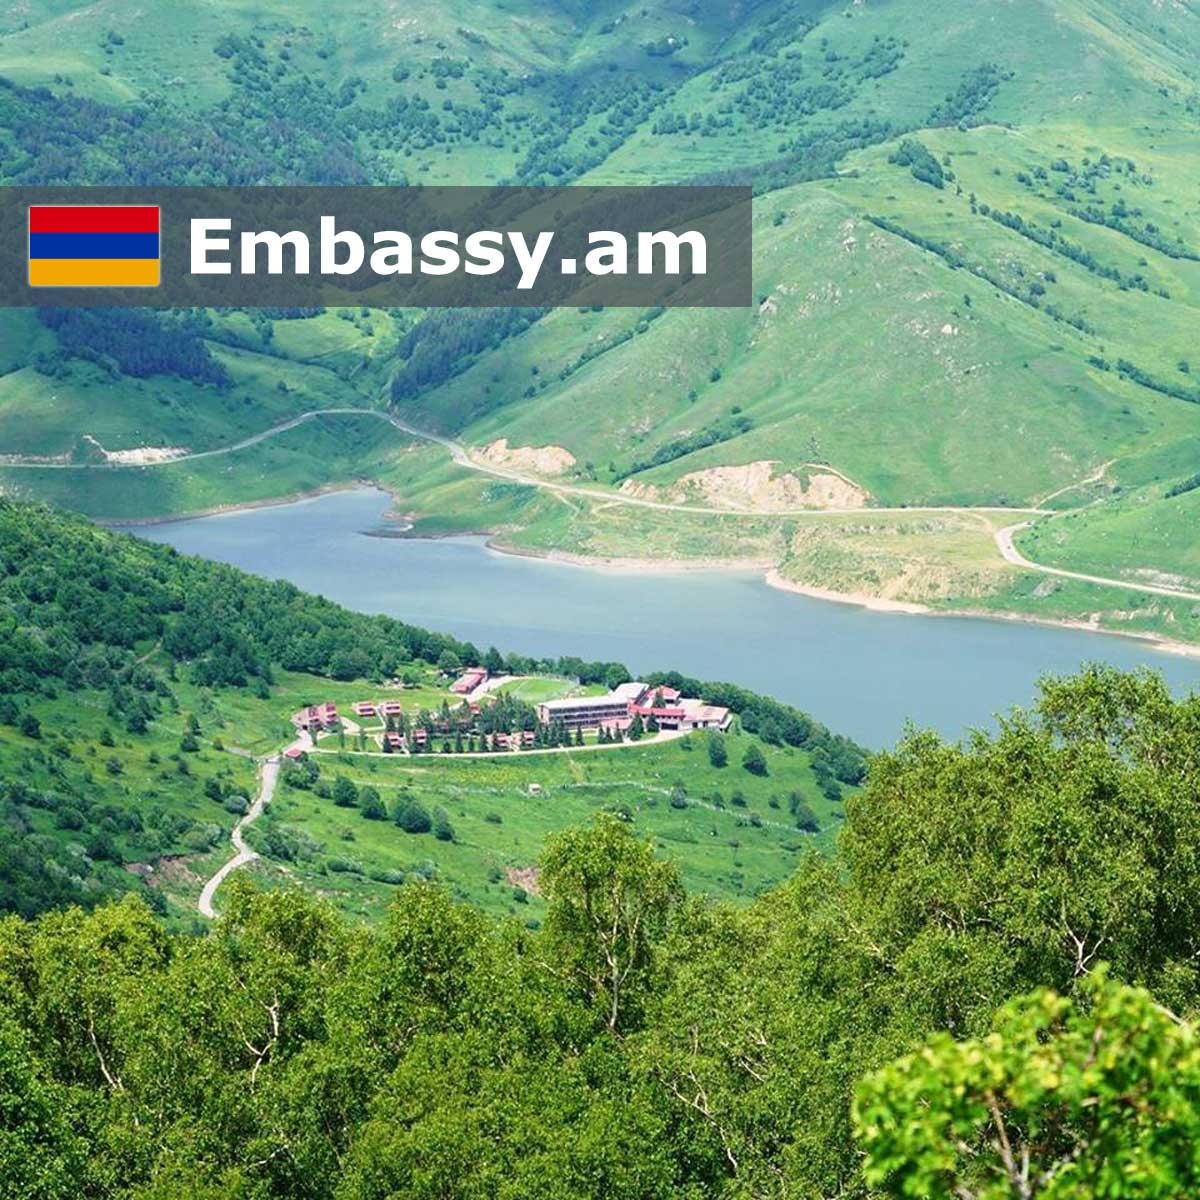 Hankavan - Hotels in Armenia - Embassy.am